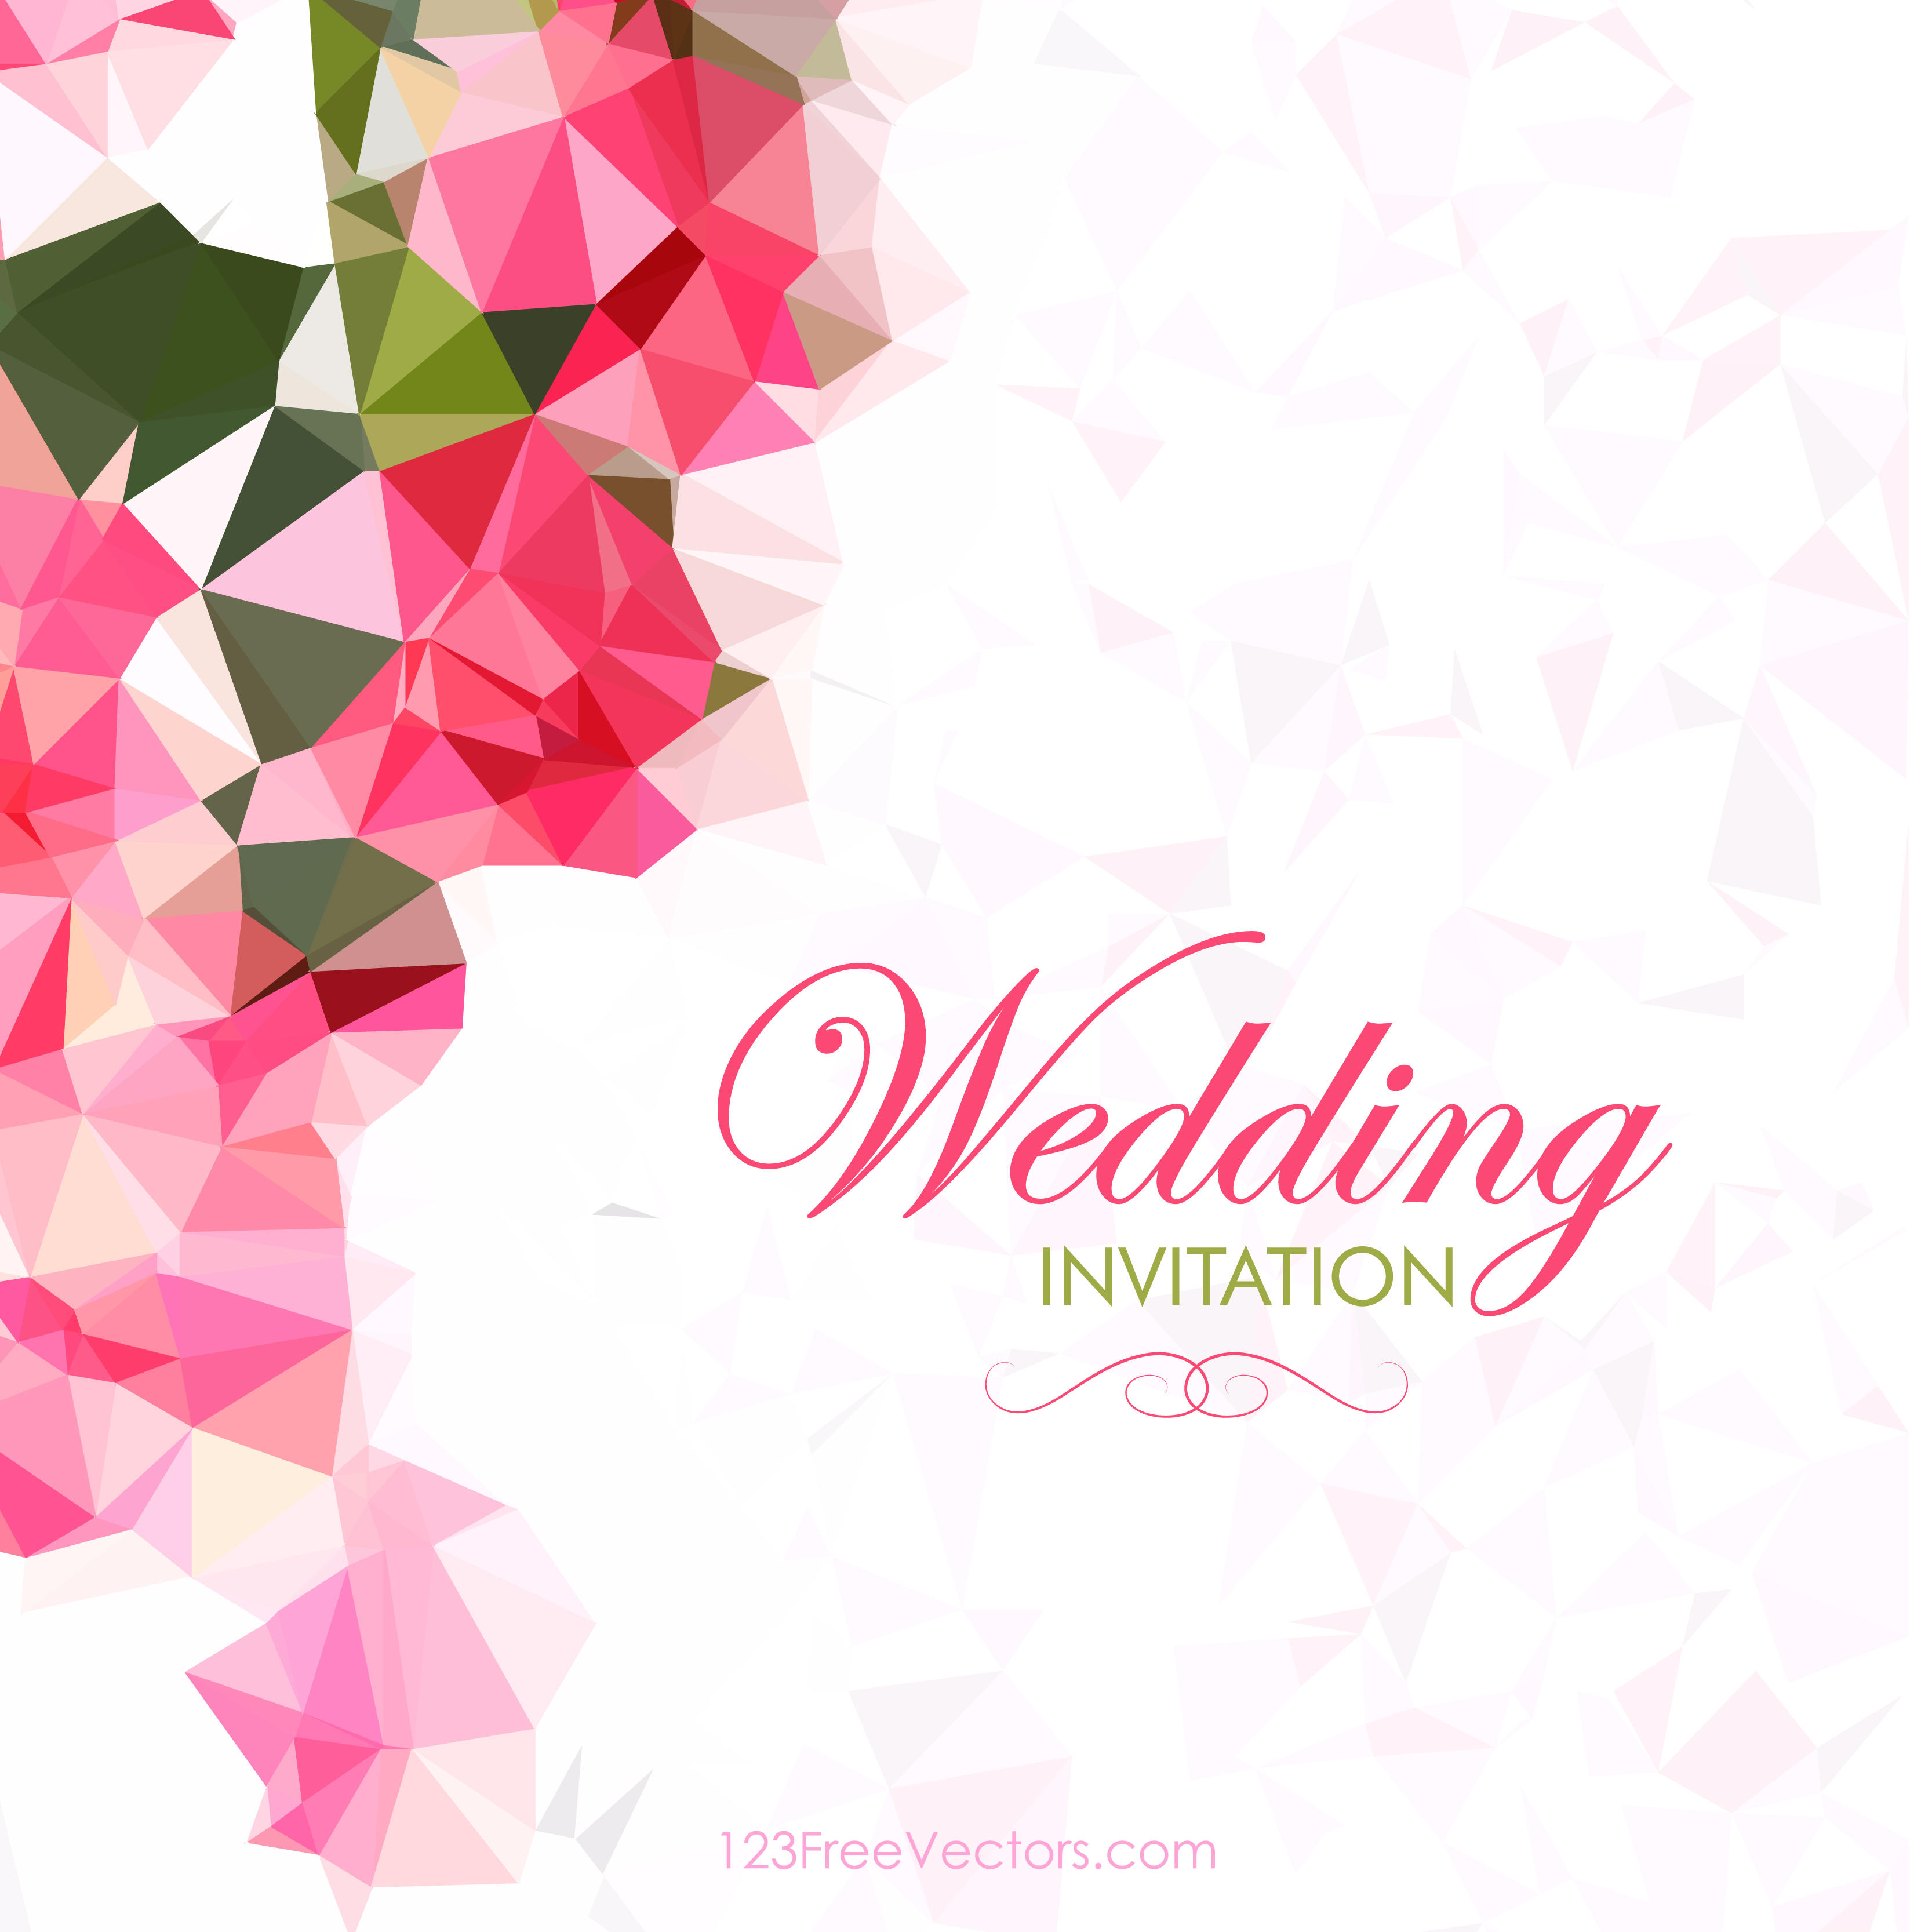 Free Wedding Vector Images